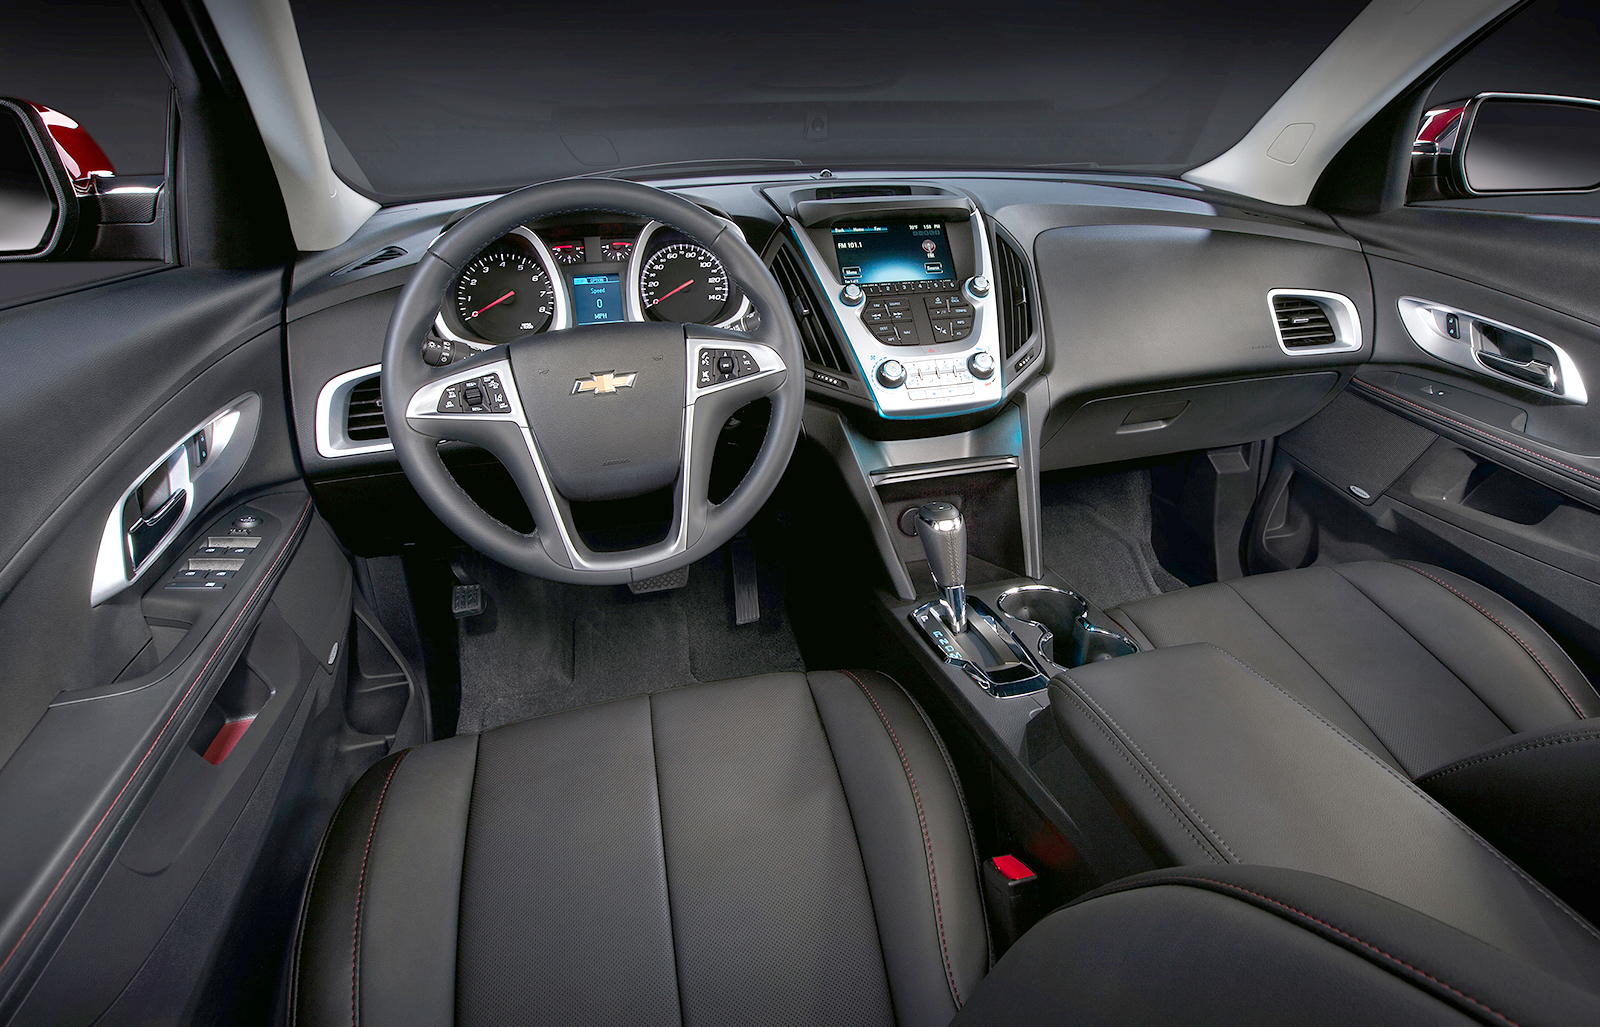 2016 Chevrolet Equinox LTZ Interior